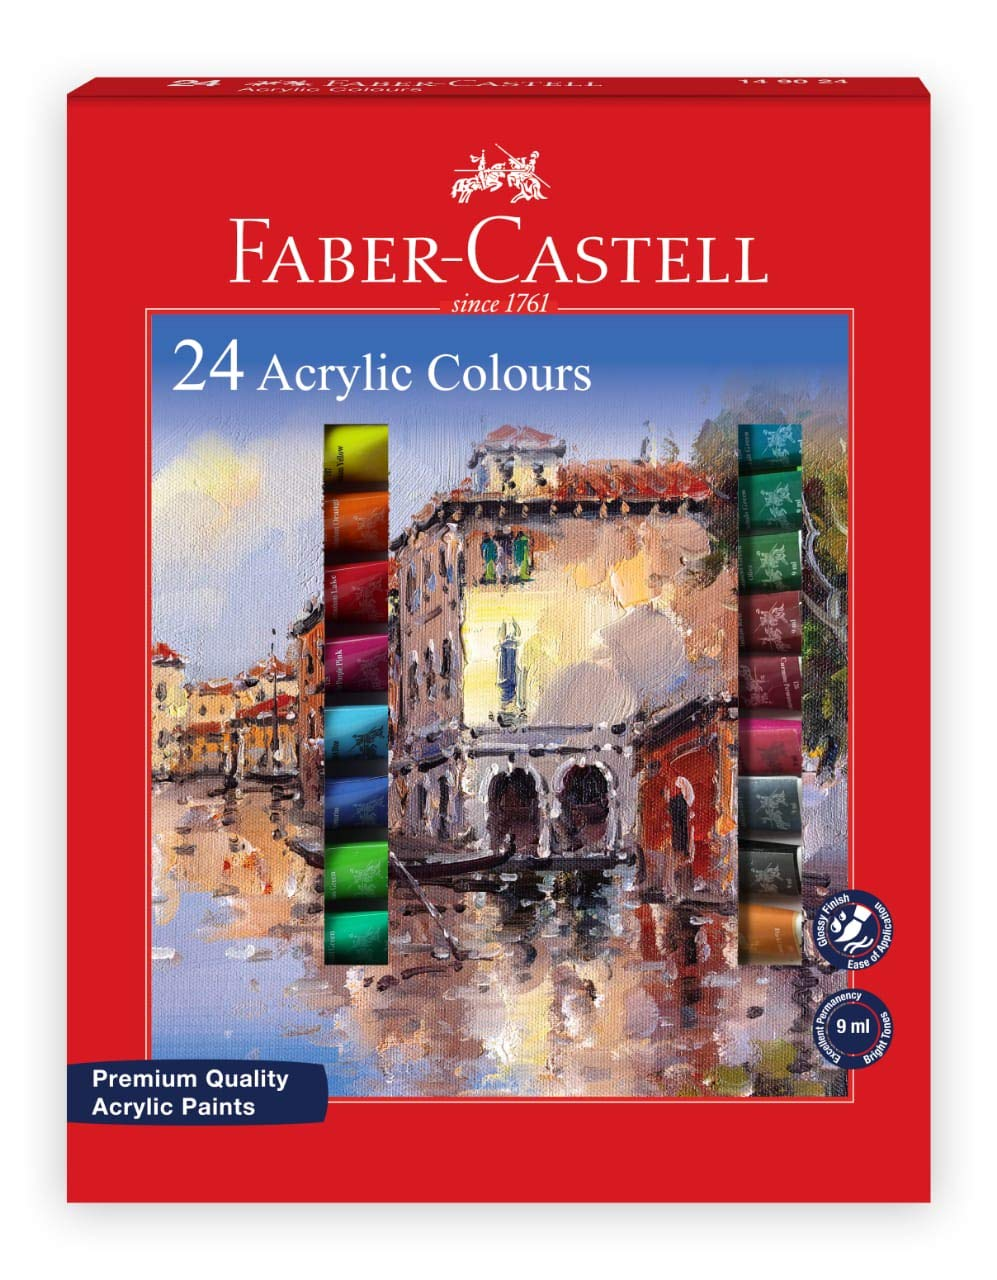 Faber-Castell Student Acrylic 9 ml Set of 24